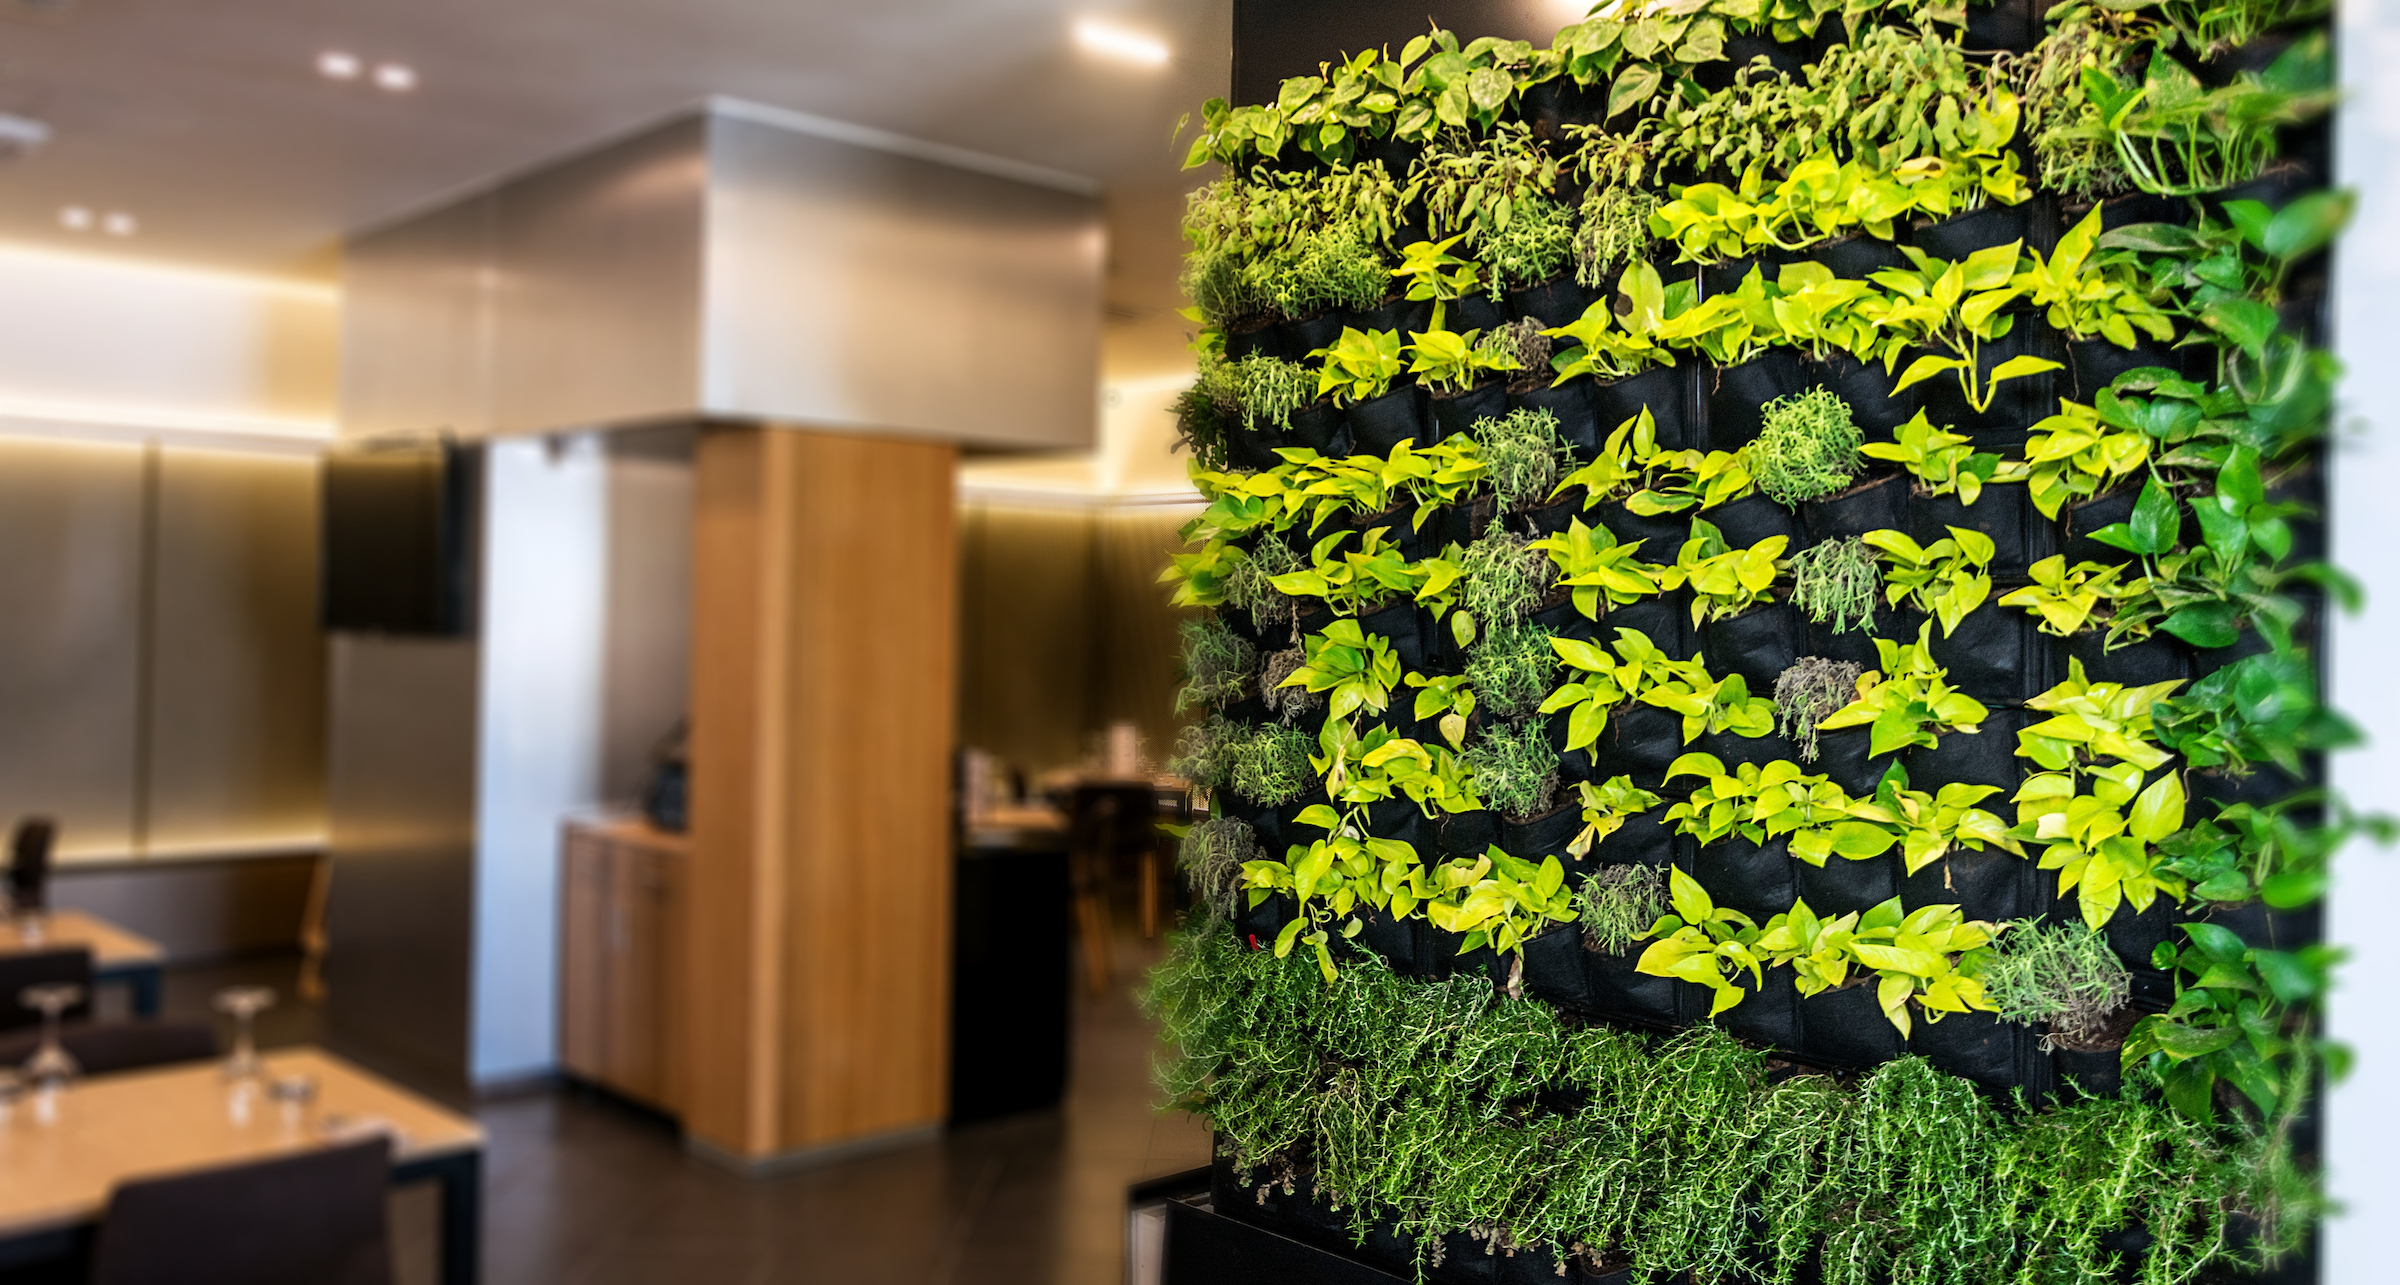 Breathtaking Living Wall Designs For Creating Your Own Vertical